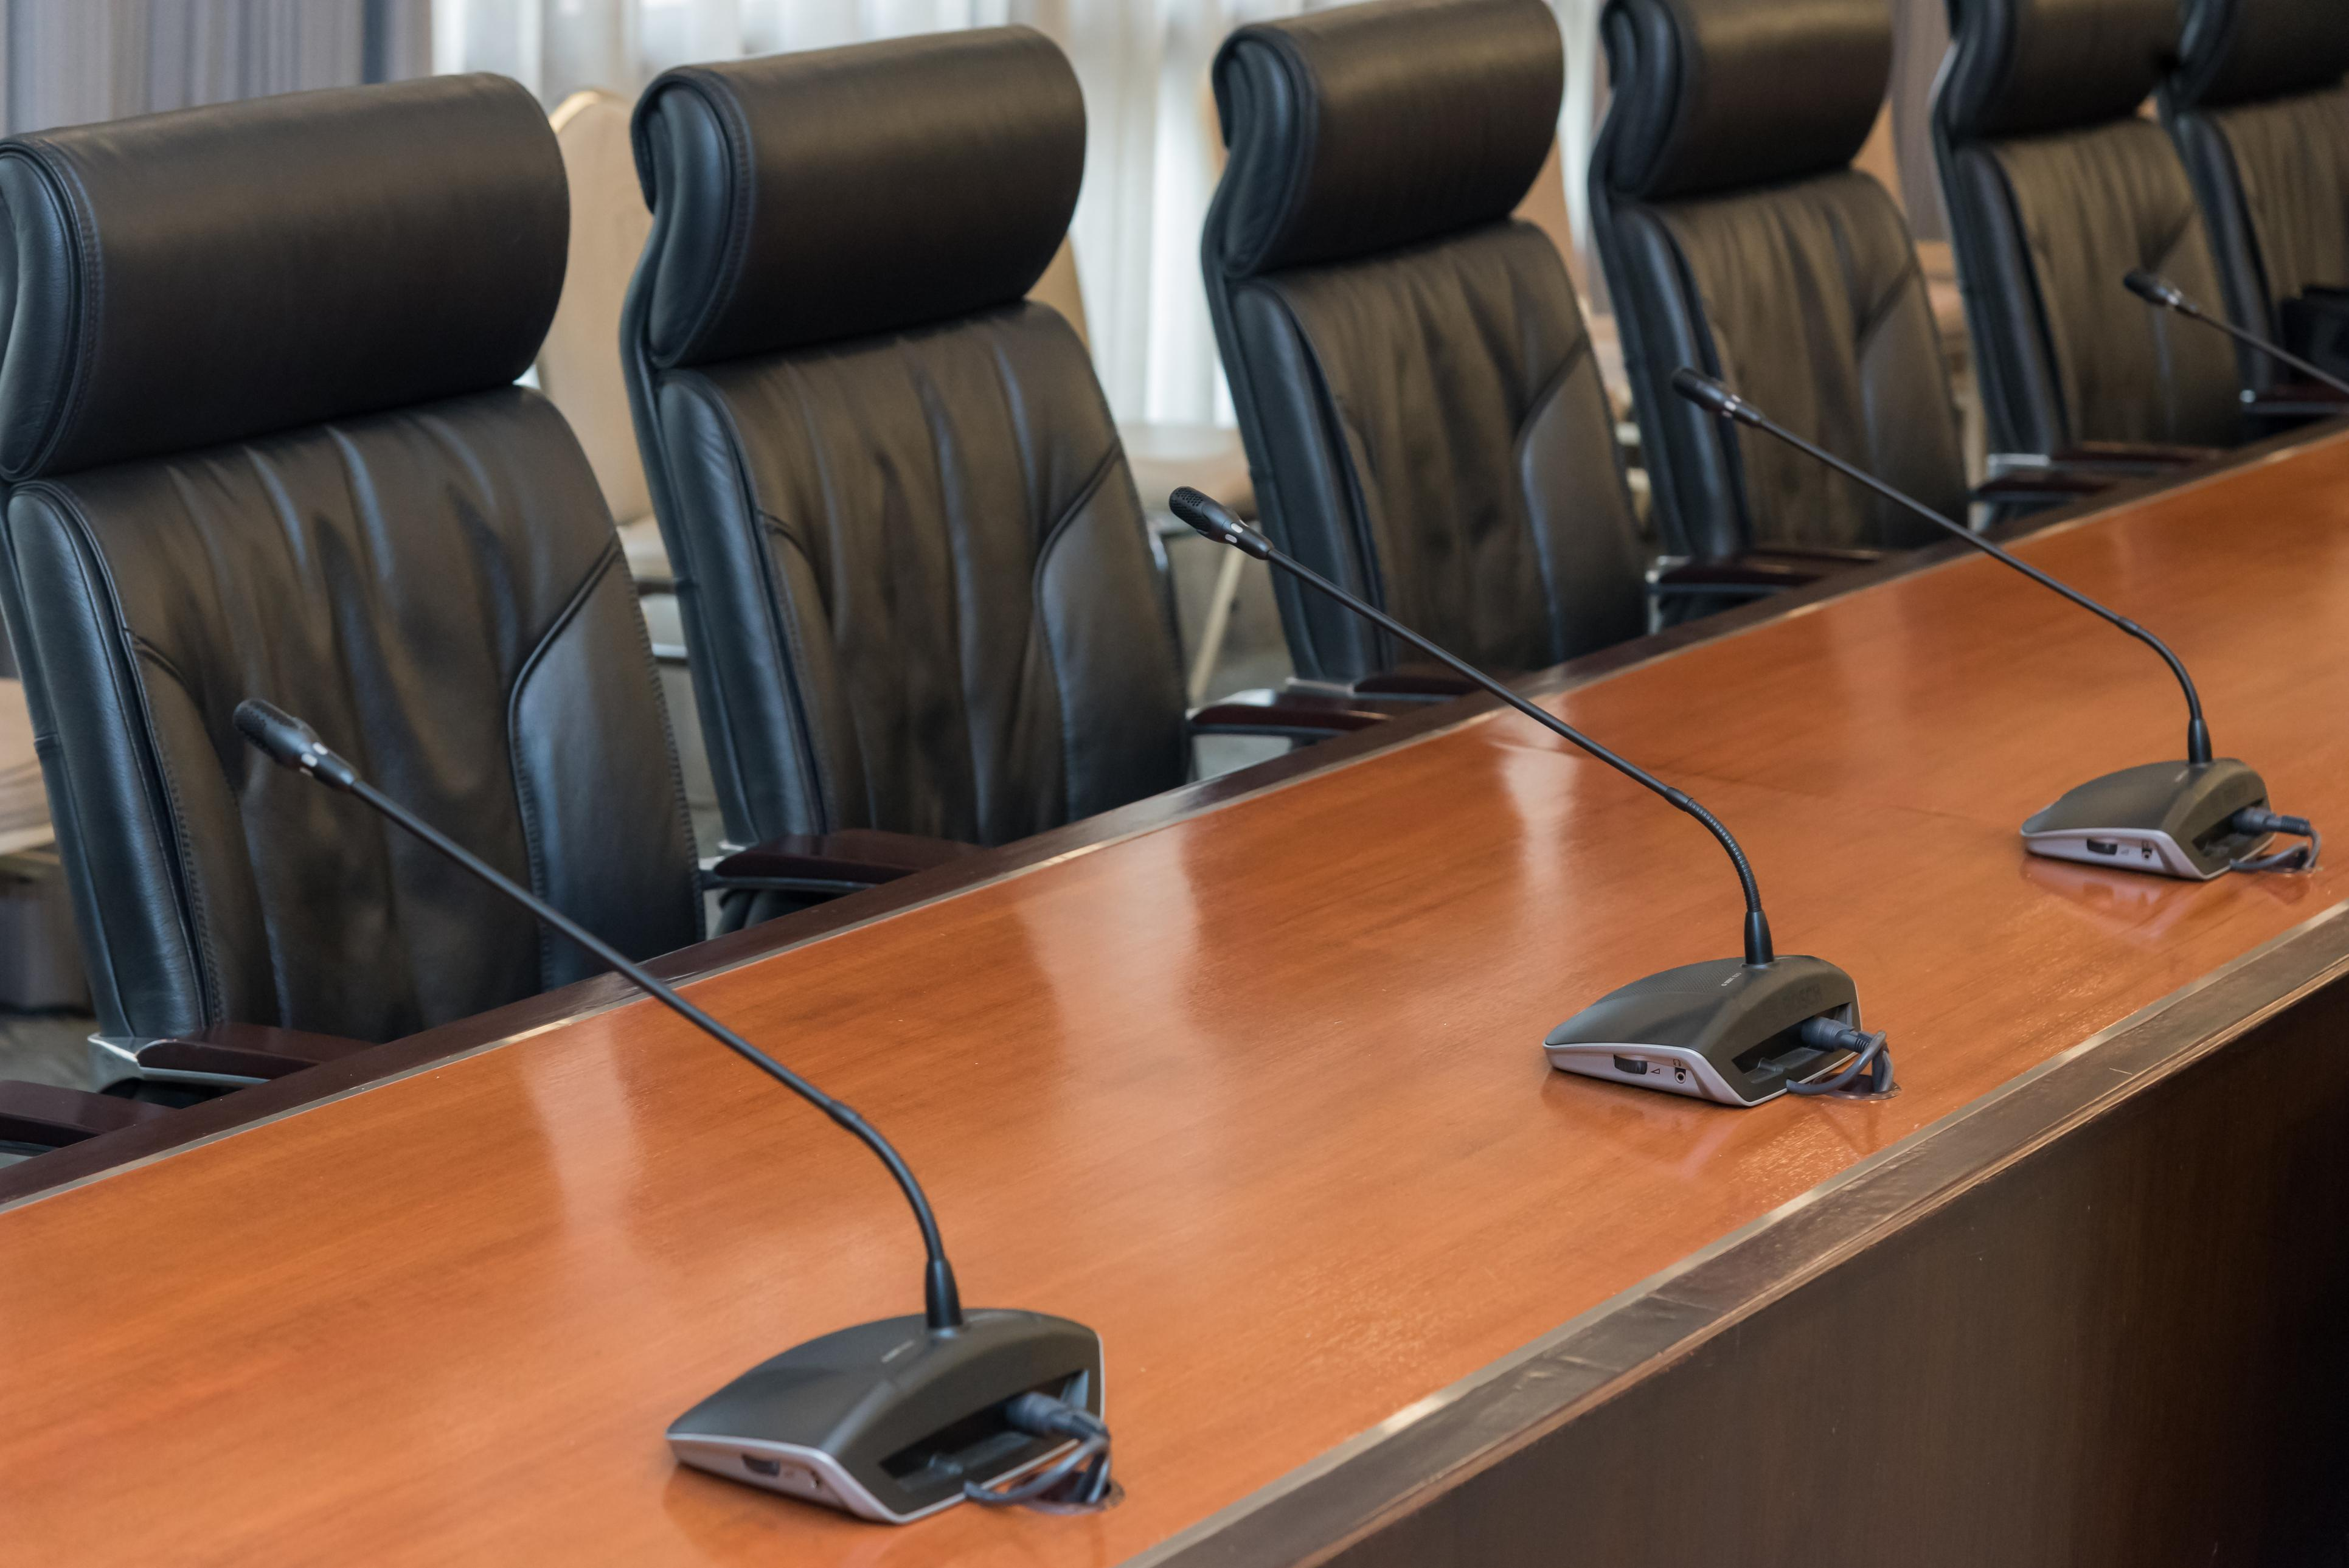 Empty chairs at a board room table with microphones